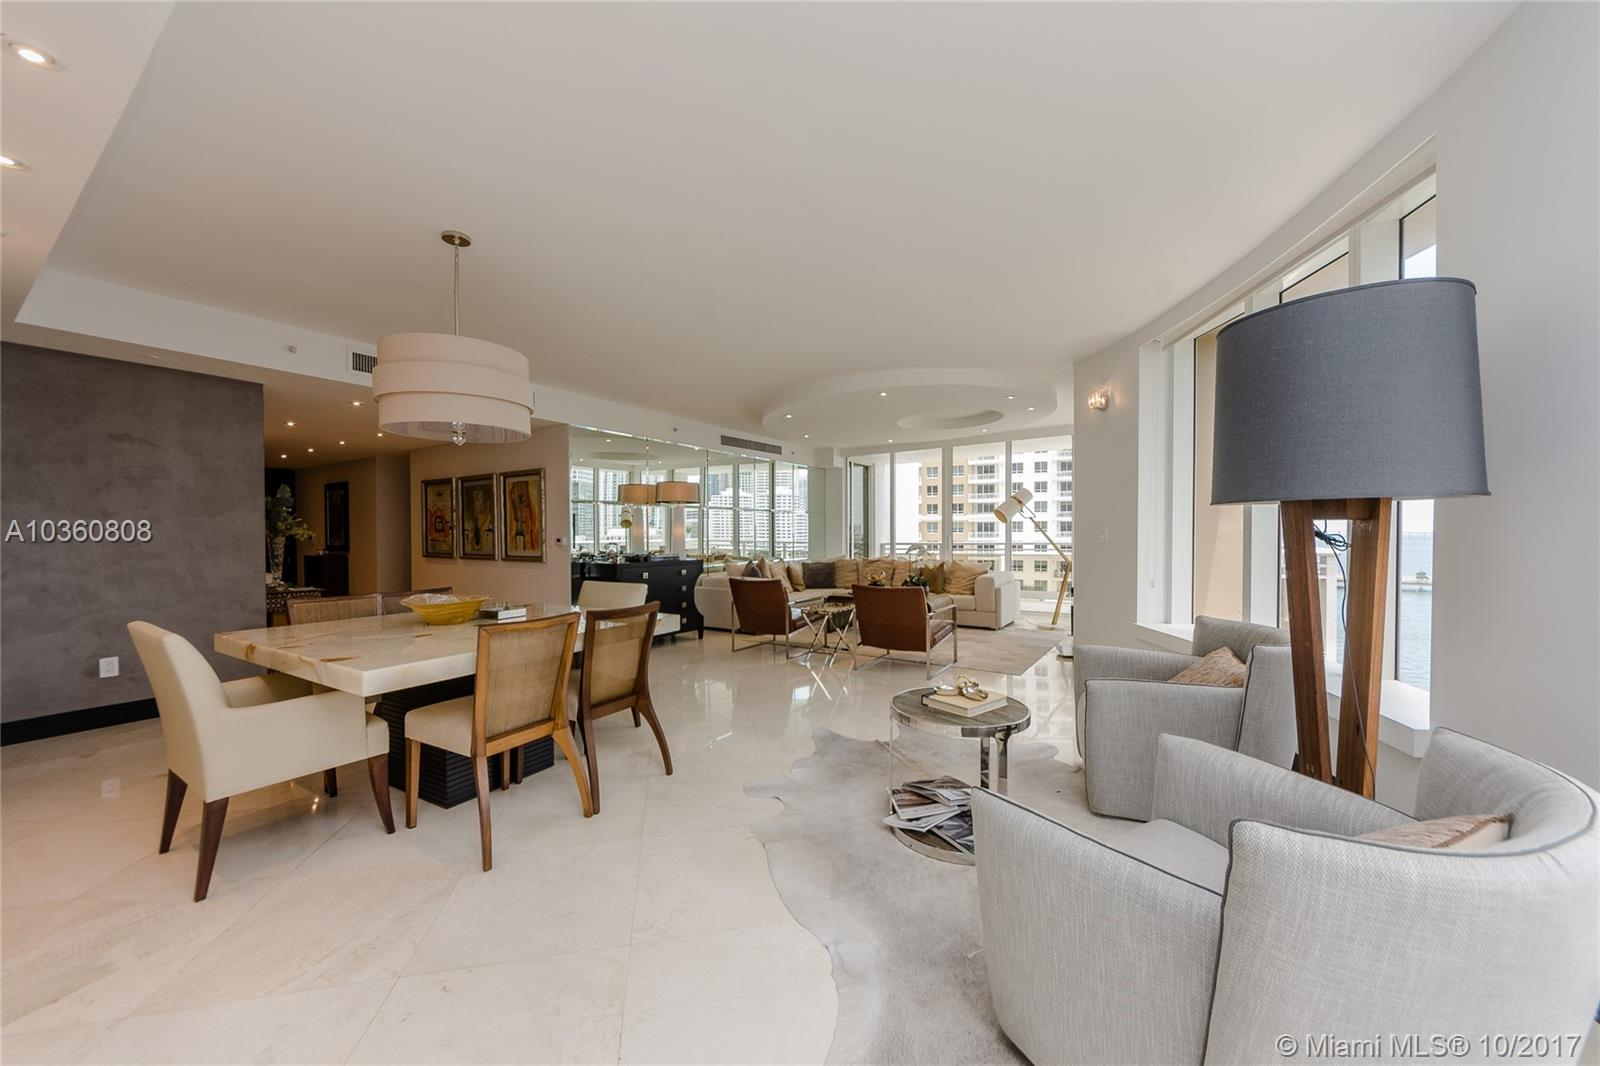 901 Brickell Key Blvd # 904, Miami , FL 33131